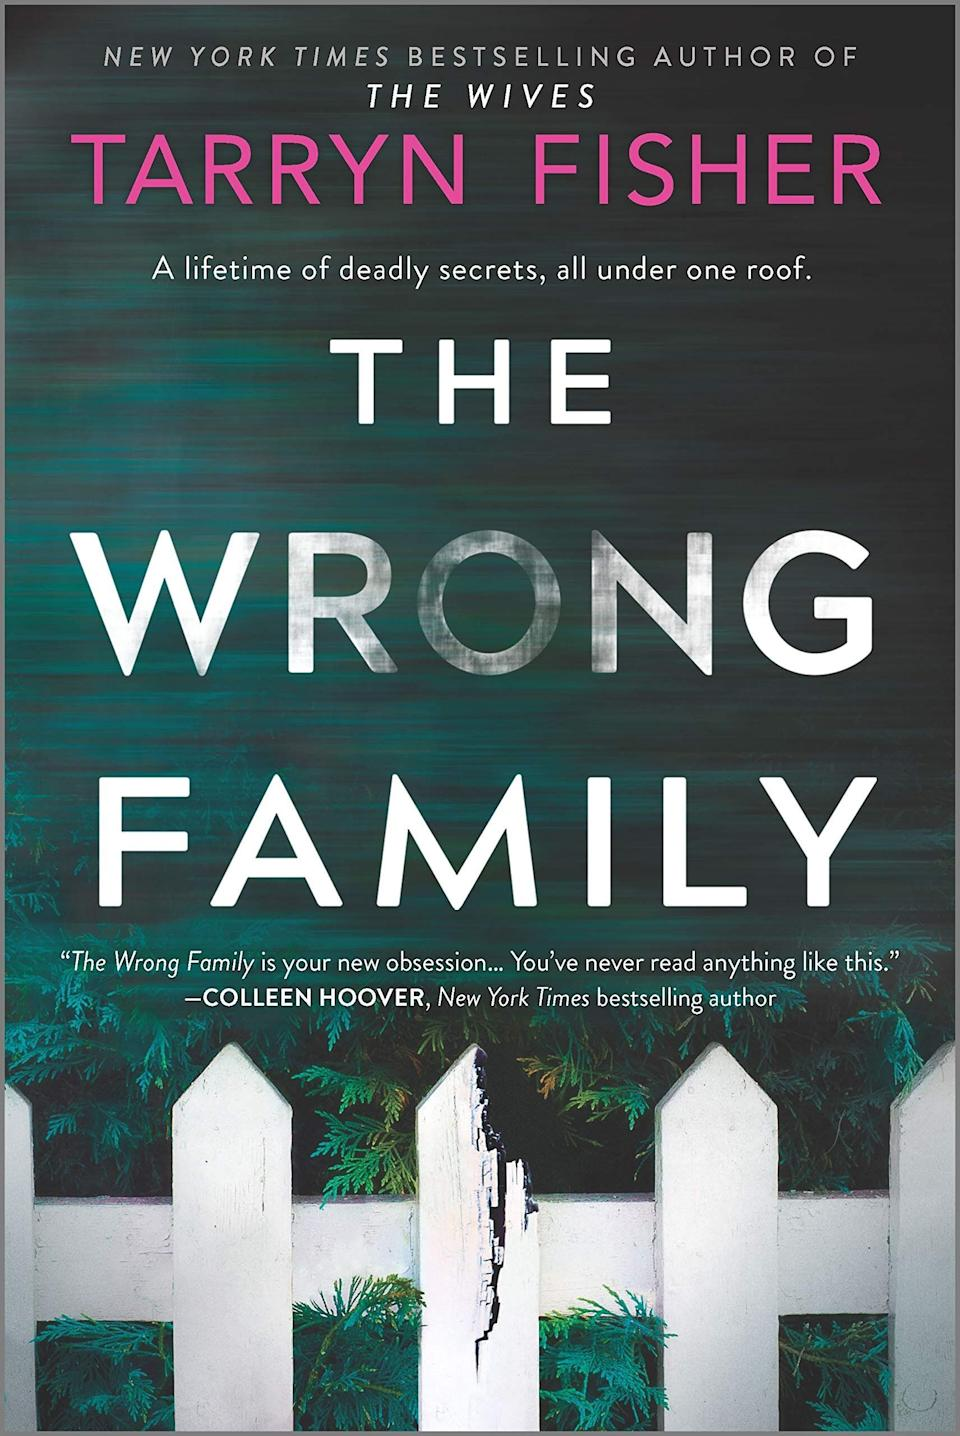 """The Crouch family seems to have it all figured out. They have a perfect marriage, a perfect son, a perfect house. But when Juno moves in with the family, she discovers the Crouch's flawless facade is hiding some dark secrets. However, Juno herself isn't that perfect, either. Readers of """"The Wrong Family"""" will enjoy Tarryn Fisher's usual twists and dark turns in her latest domestic thriller. Read more about it on <a href=""""https://www.goodreads.com/book/show/51183094-the-wrong-family"""">Goodreads</a>, and grab a copy on <a href=""""https://amzn.to/2JzxTYO"""">Amazon</a> or <a href=""""https://fave.co/2JzxZ2C"""">Bookshop</a>.<br /><br /><i>Expected release date:</i> <i>December 29</i>"""